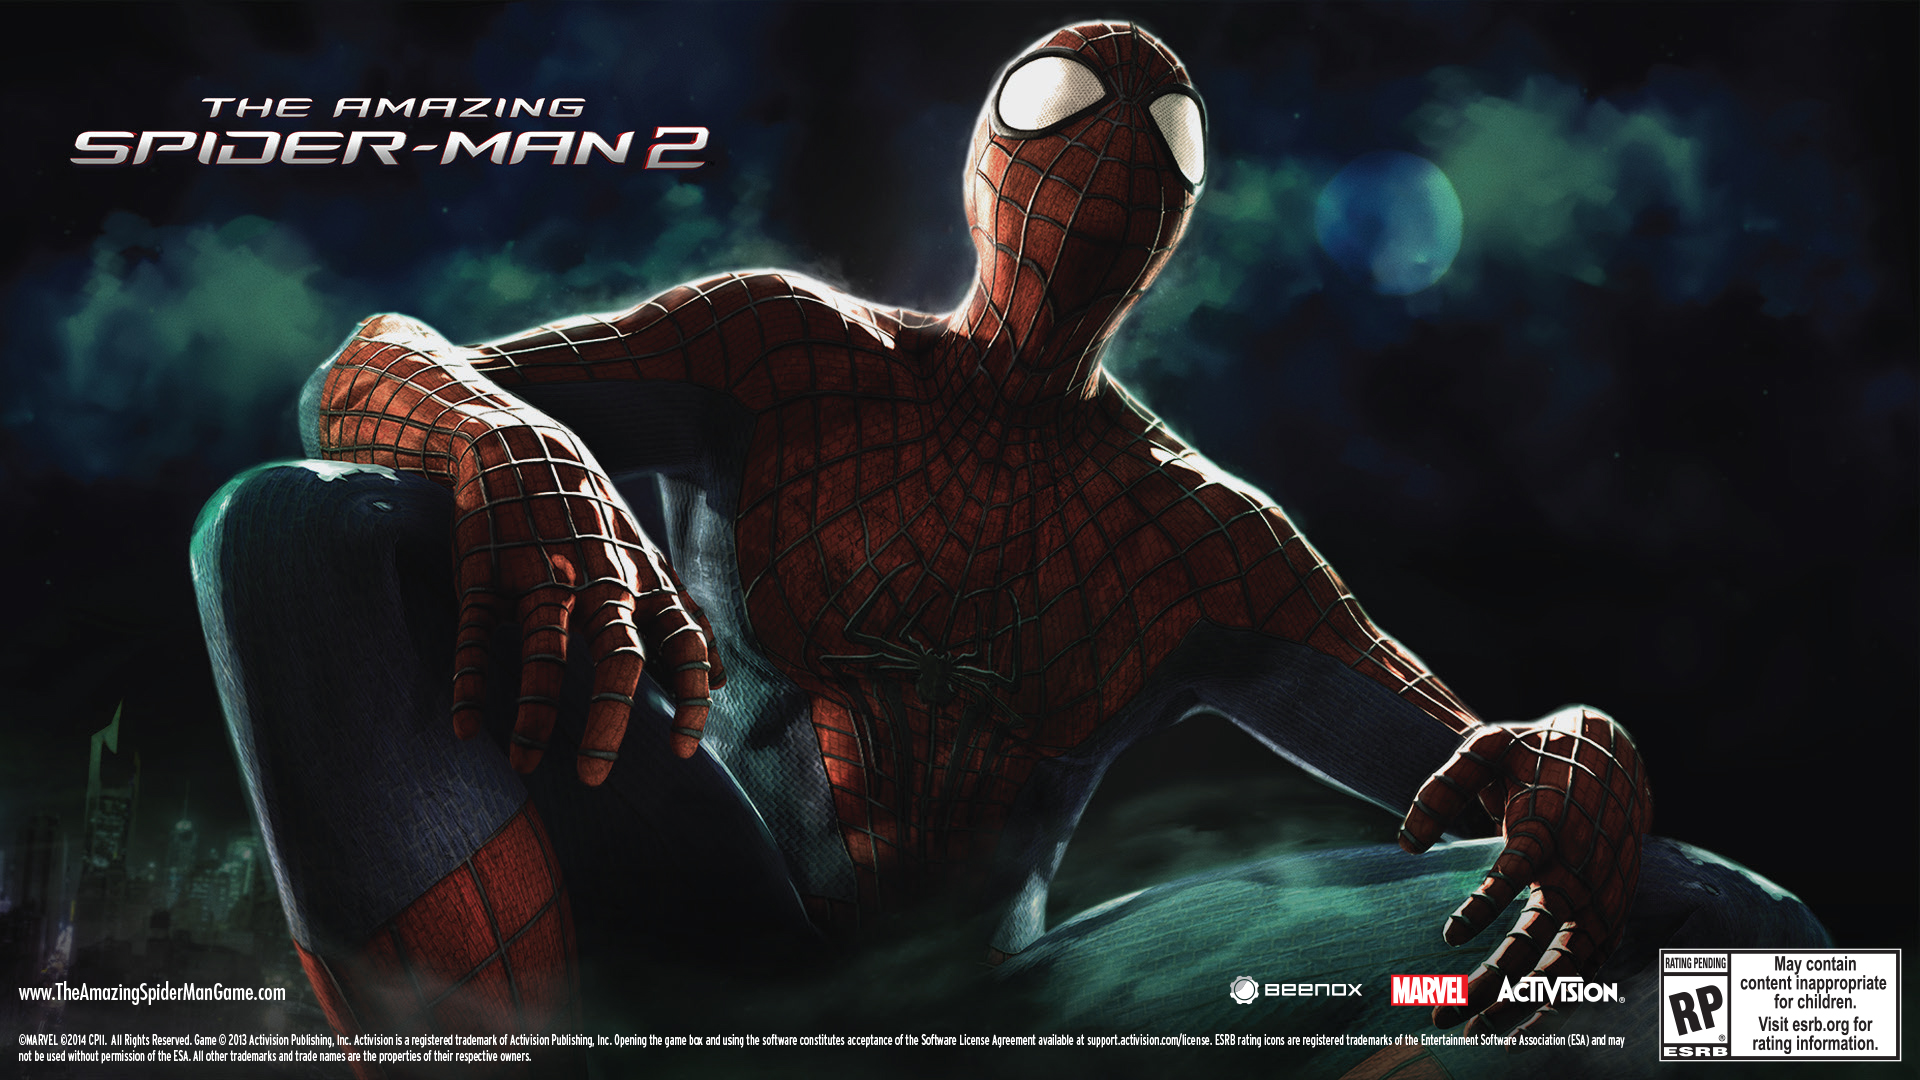 The Amazign Spider-Man 2 videogame